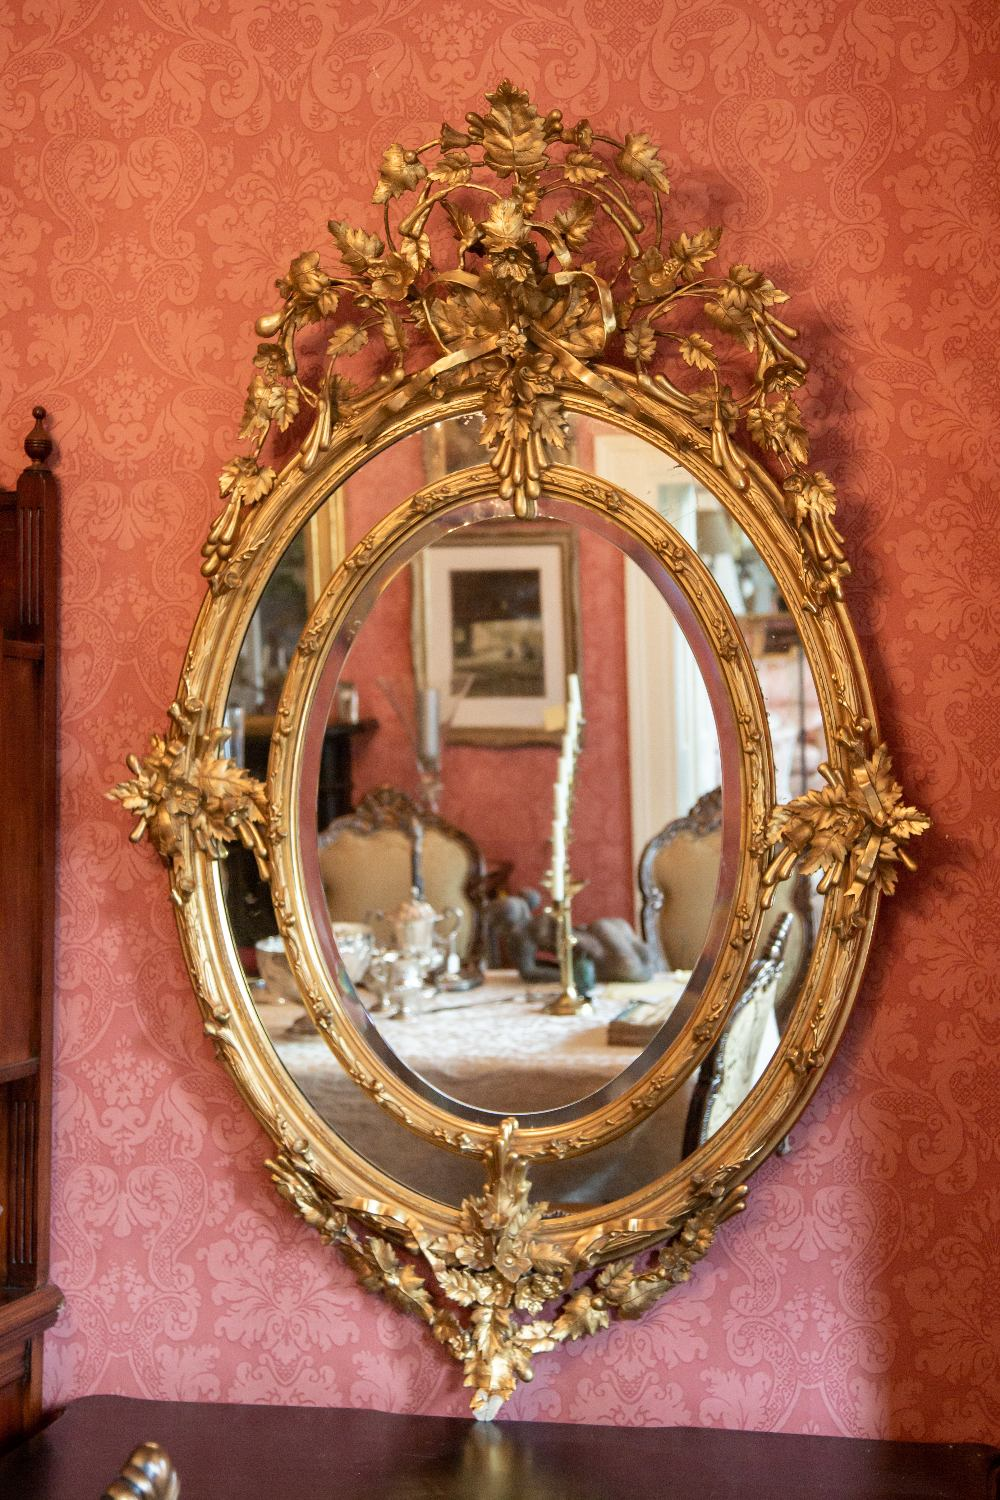 A superb large 19th Century oval gilt Wall Mirror, the ornate crest with scrolling foliage and